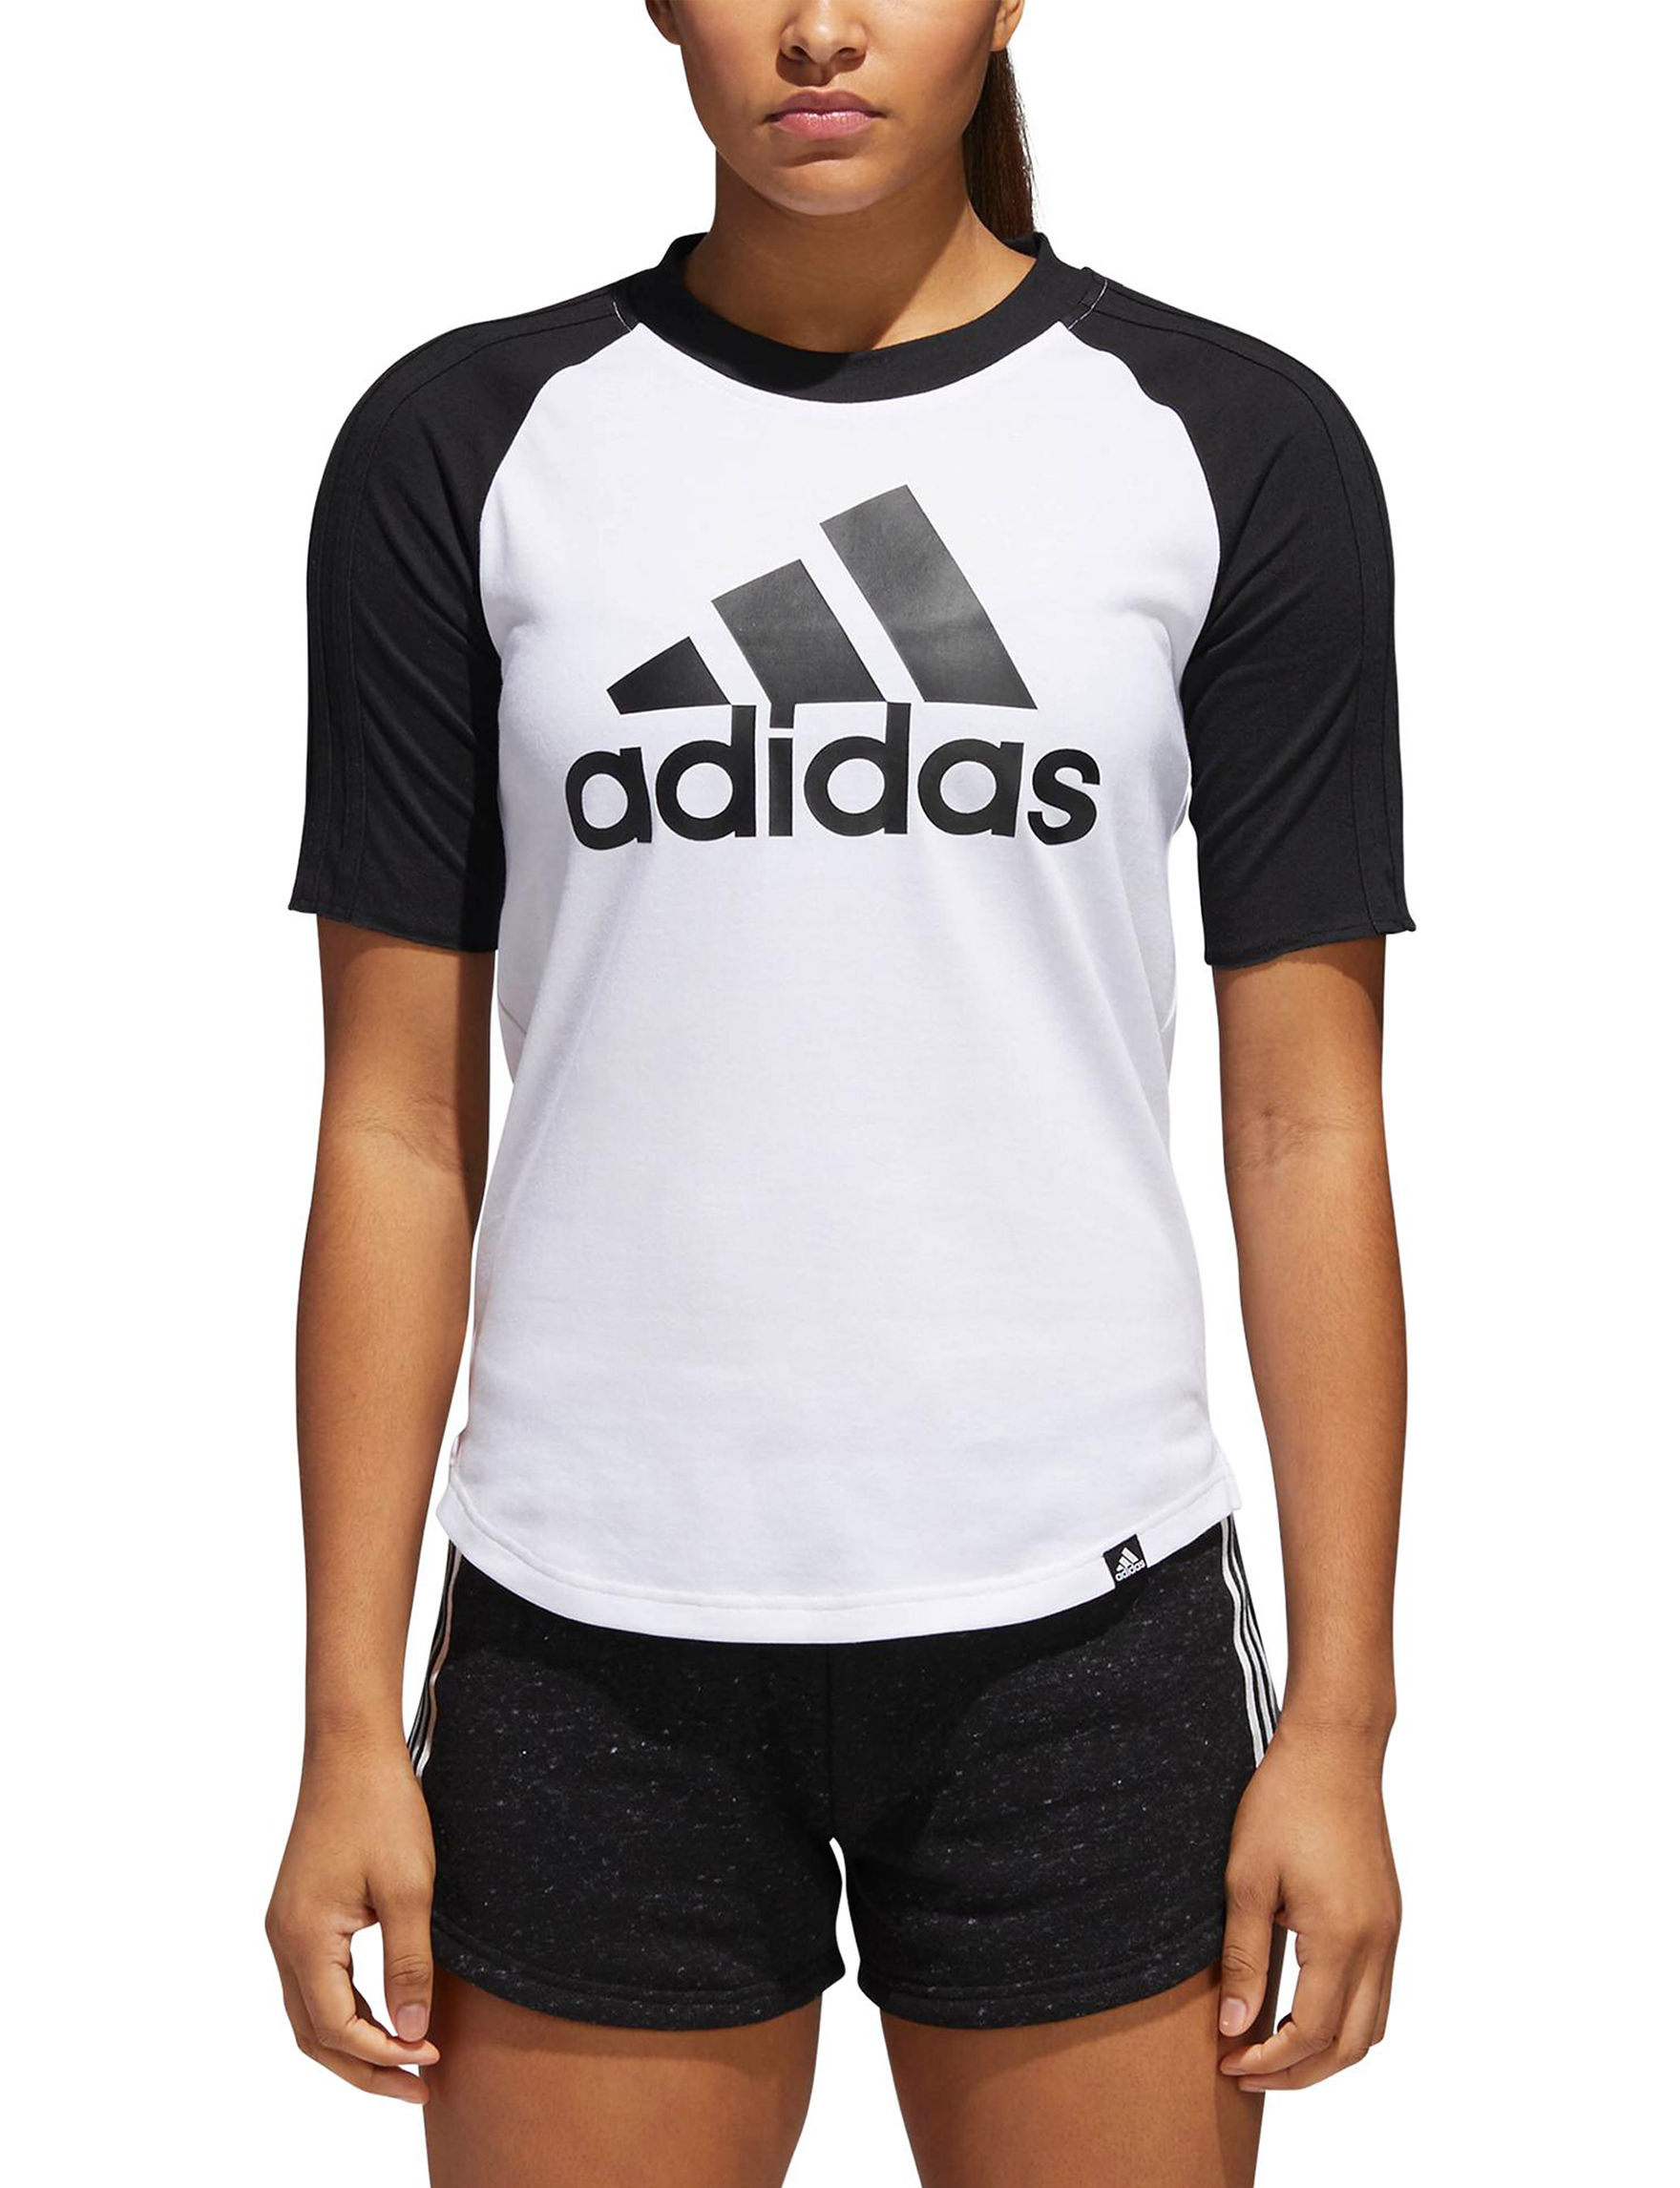 Adidas Black / White Tees & Tanks